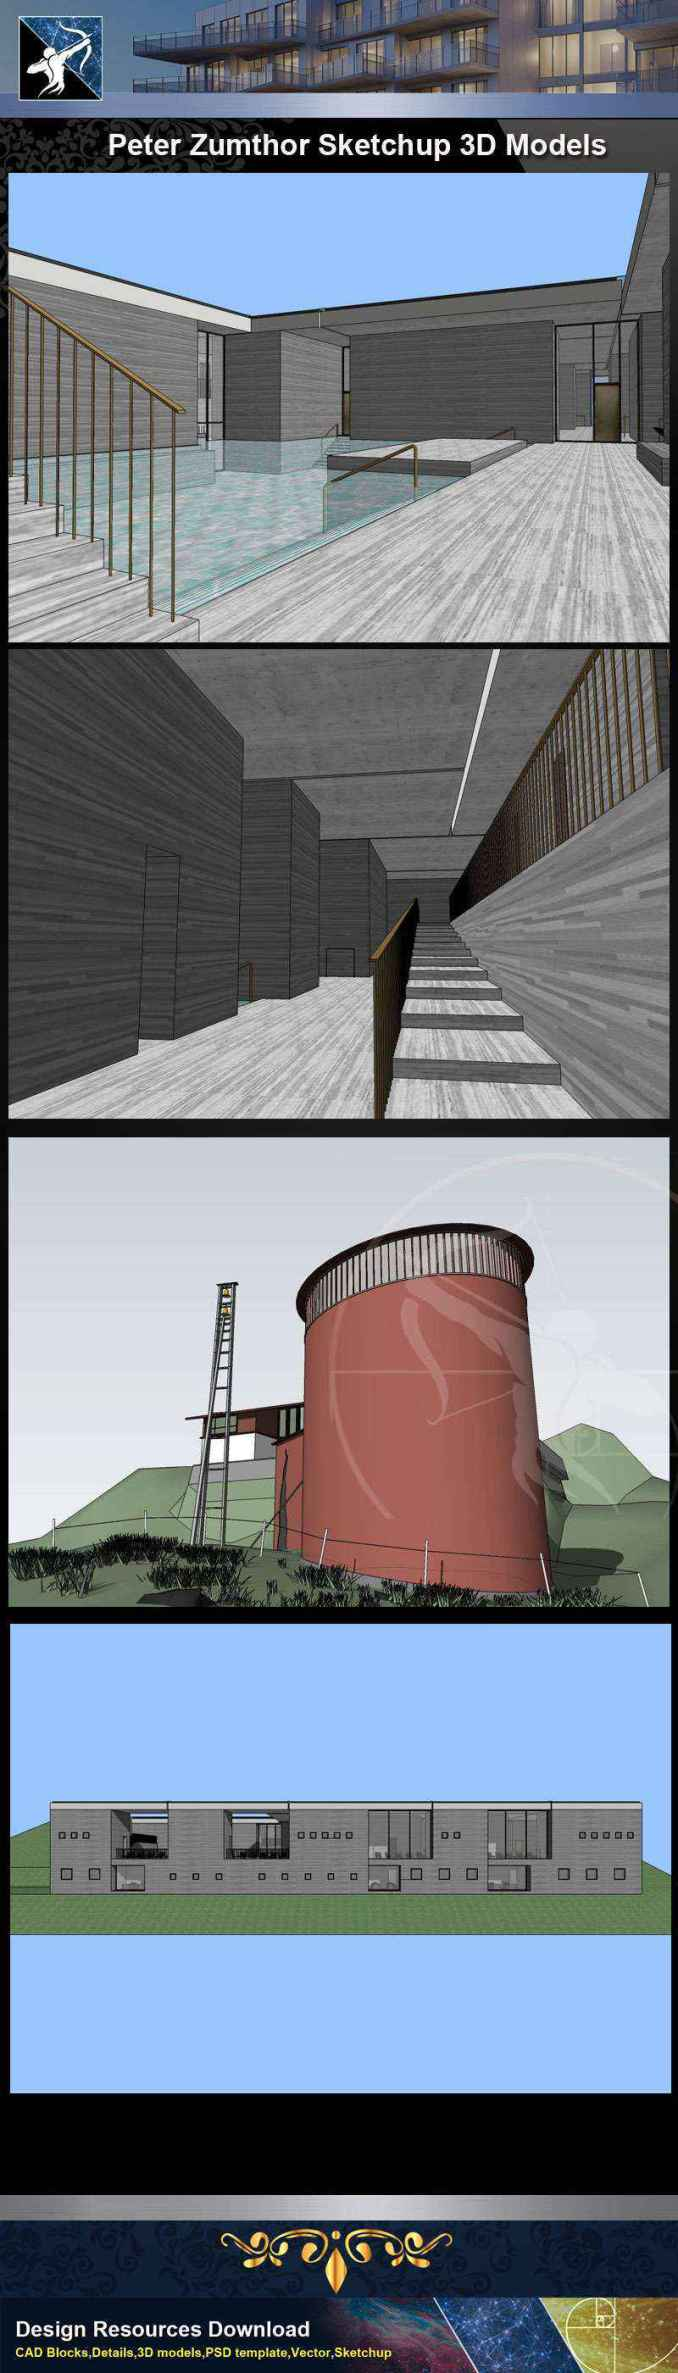 Download 4 Projects of Peter Zumthor Architecture Sketchup 3D Models(* skp  file format)